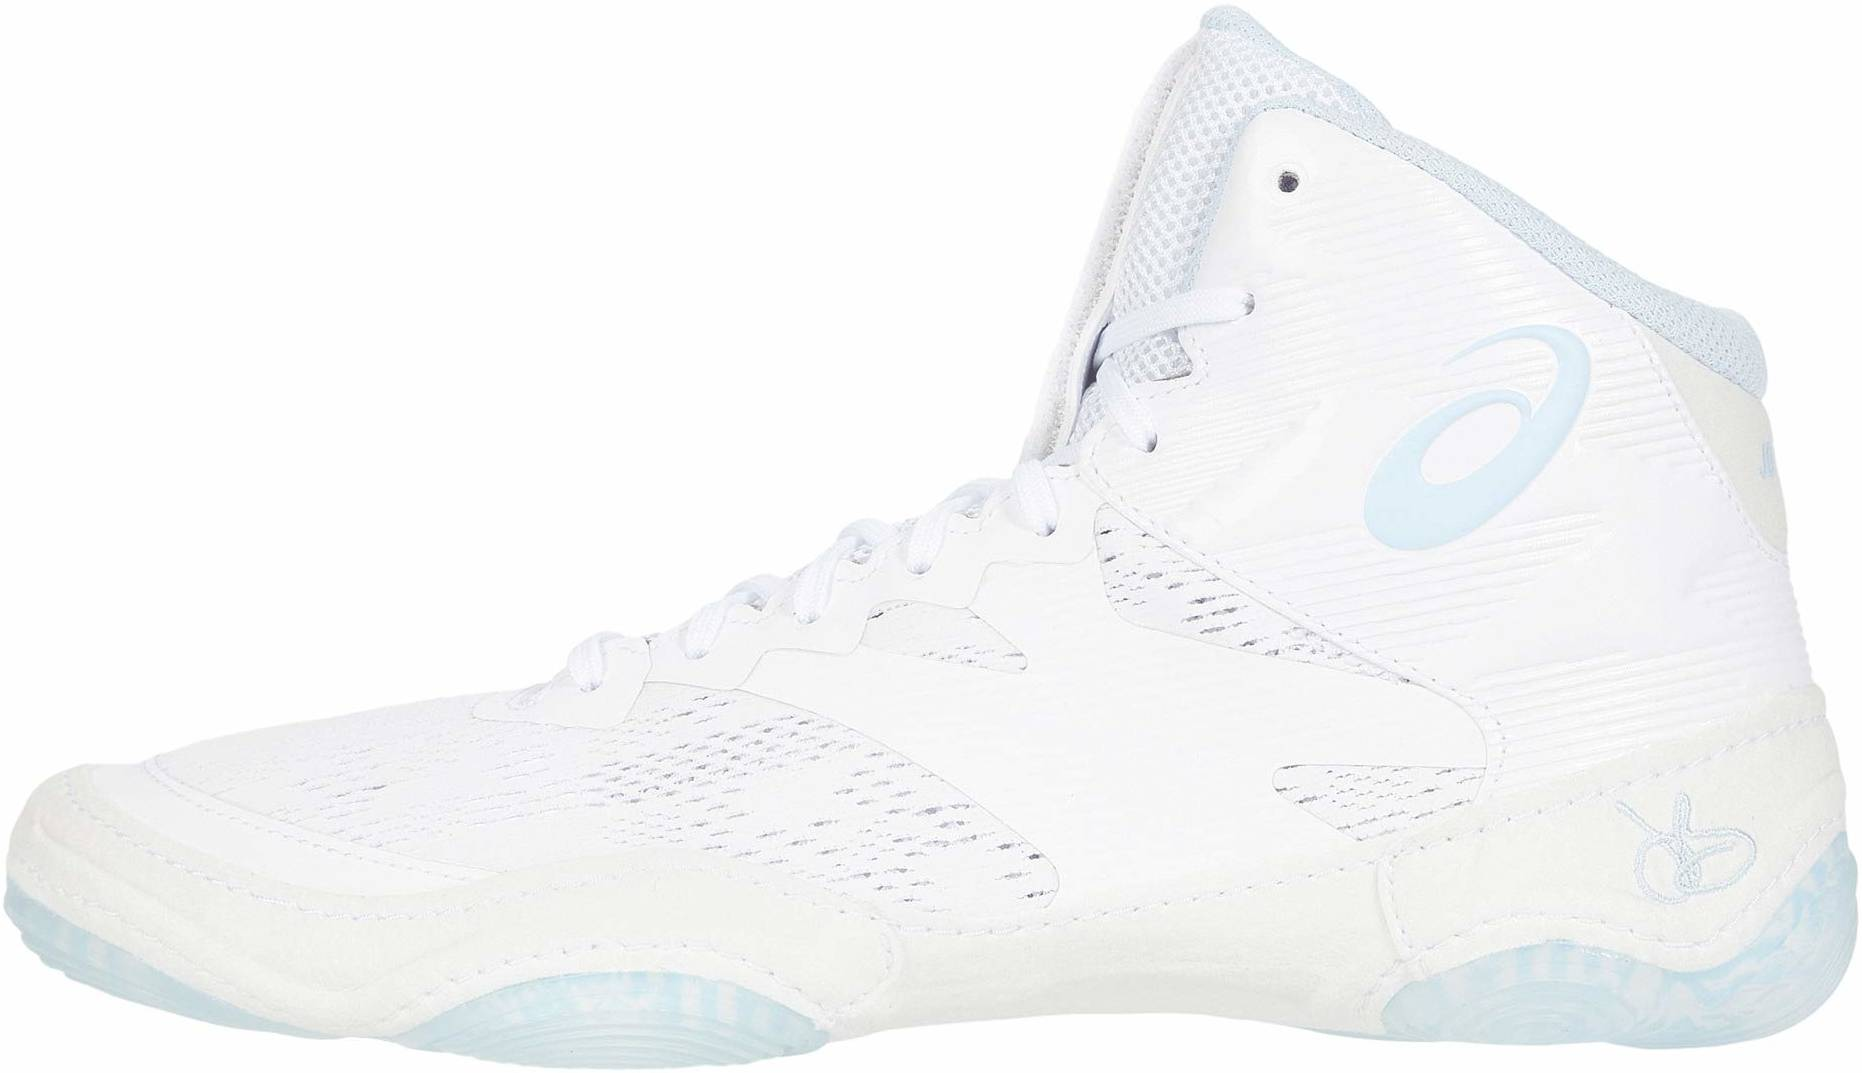 Save 21% on White Wrestling Shoes (14